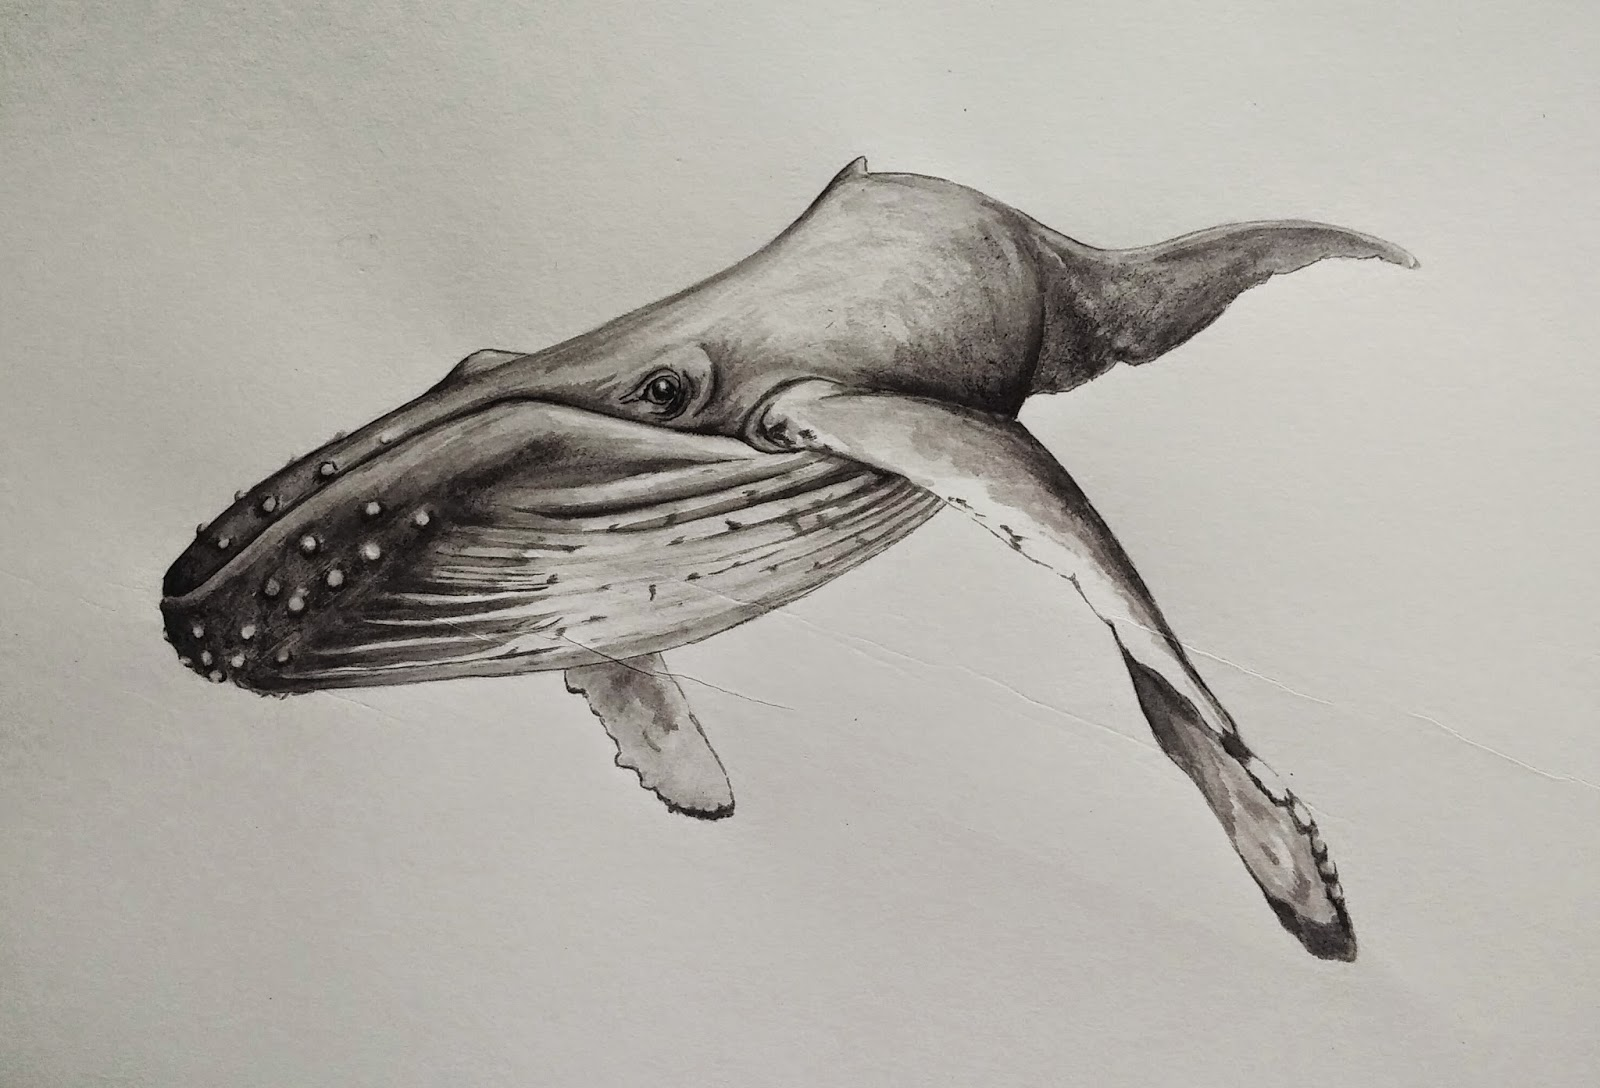 Sperm whale sketch drawing gallery